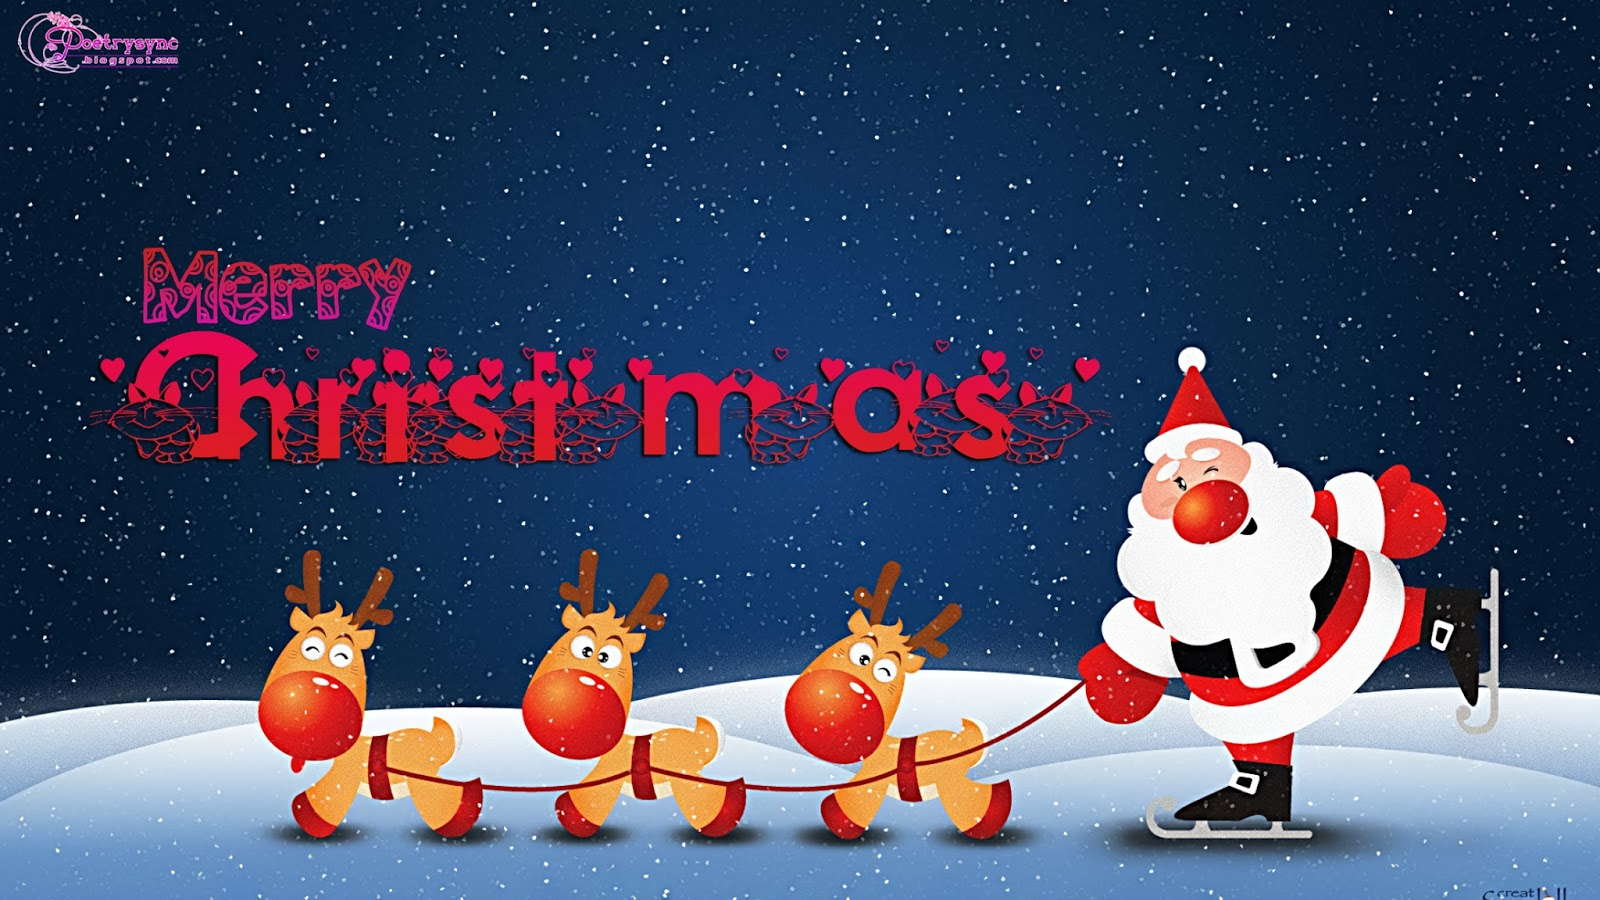 Merry Christmas Wishes With Santa And Deers Cute Cartoon For Kids Claus Hd Wallpaper